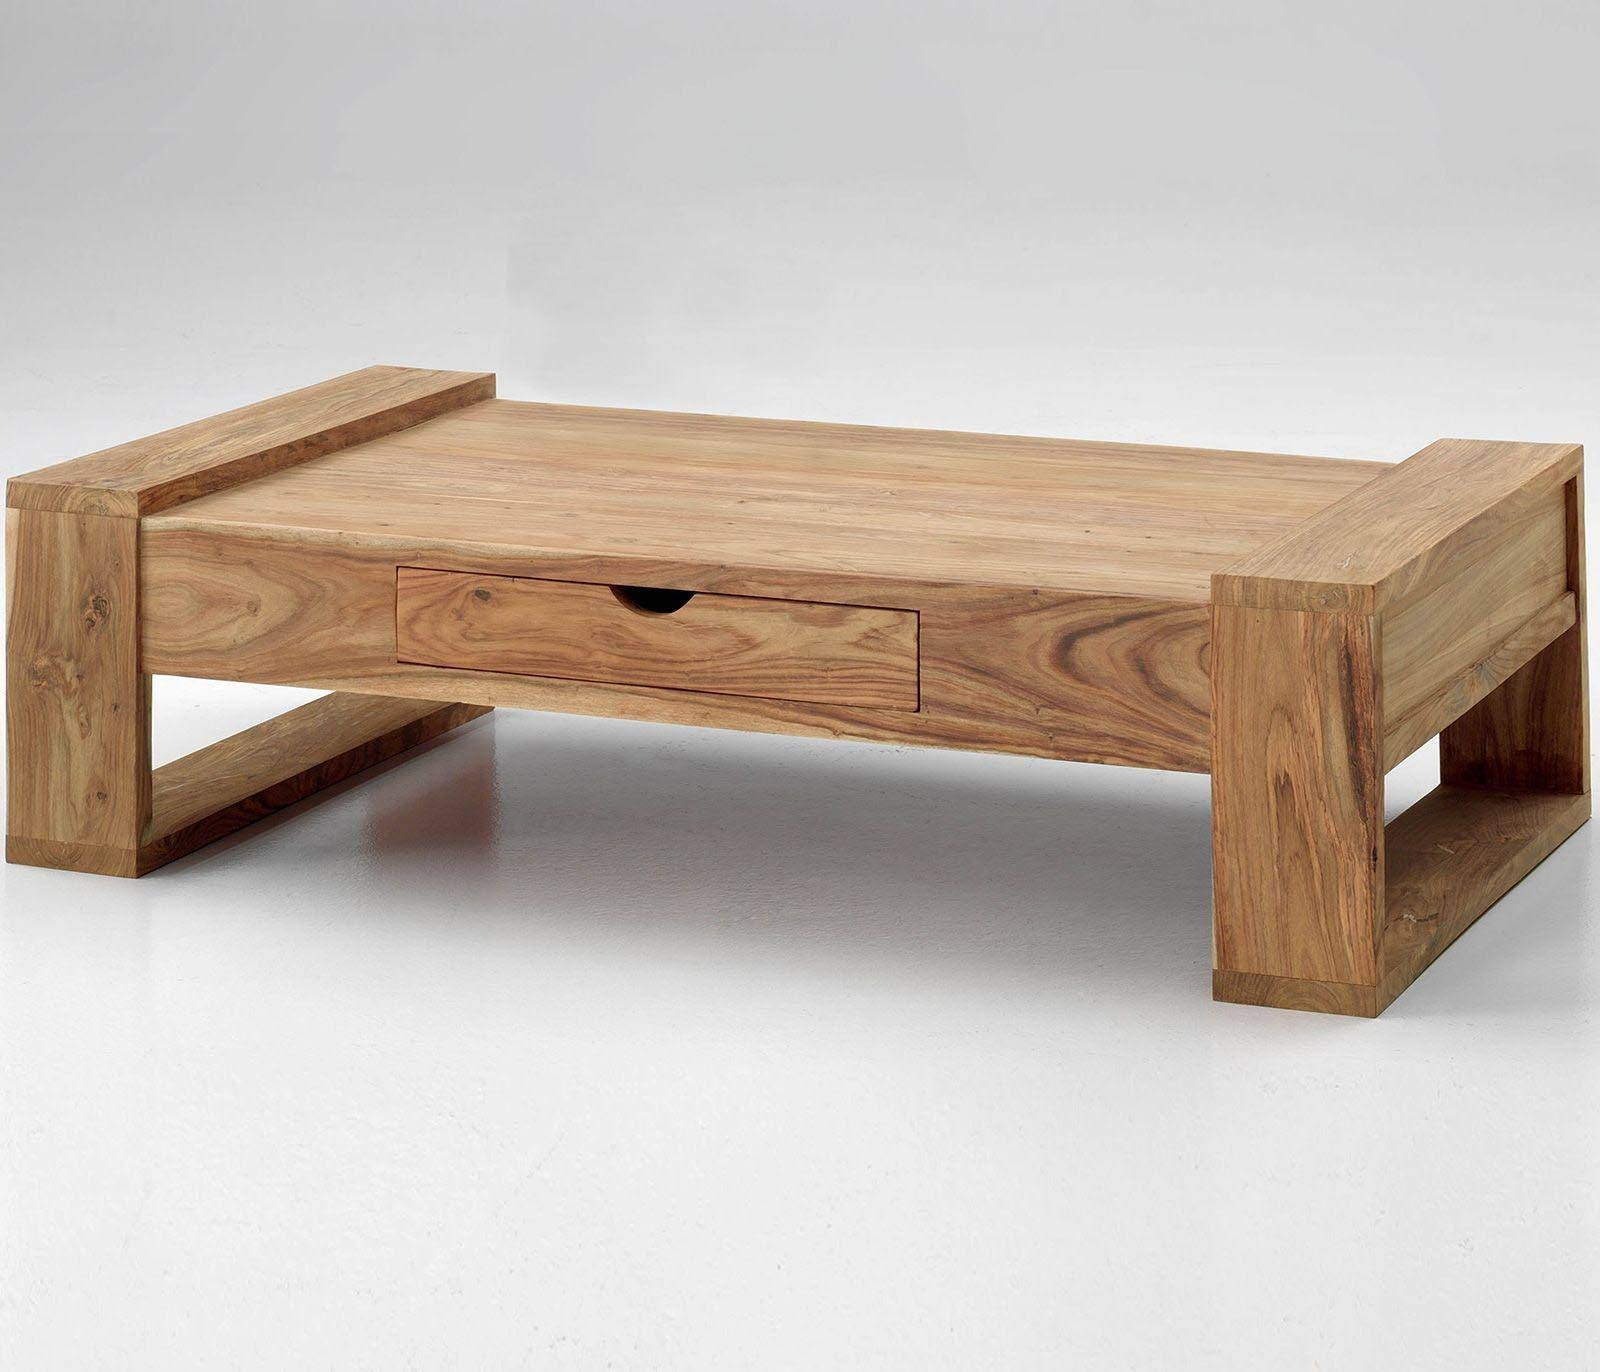 Low Coffee Table Wood | Coffee Table Design Ideas with Low Wooden Coffee Tables (Image 7 of 15)